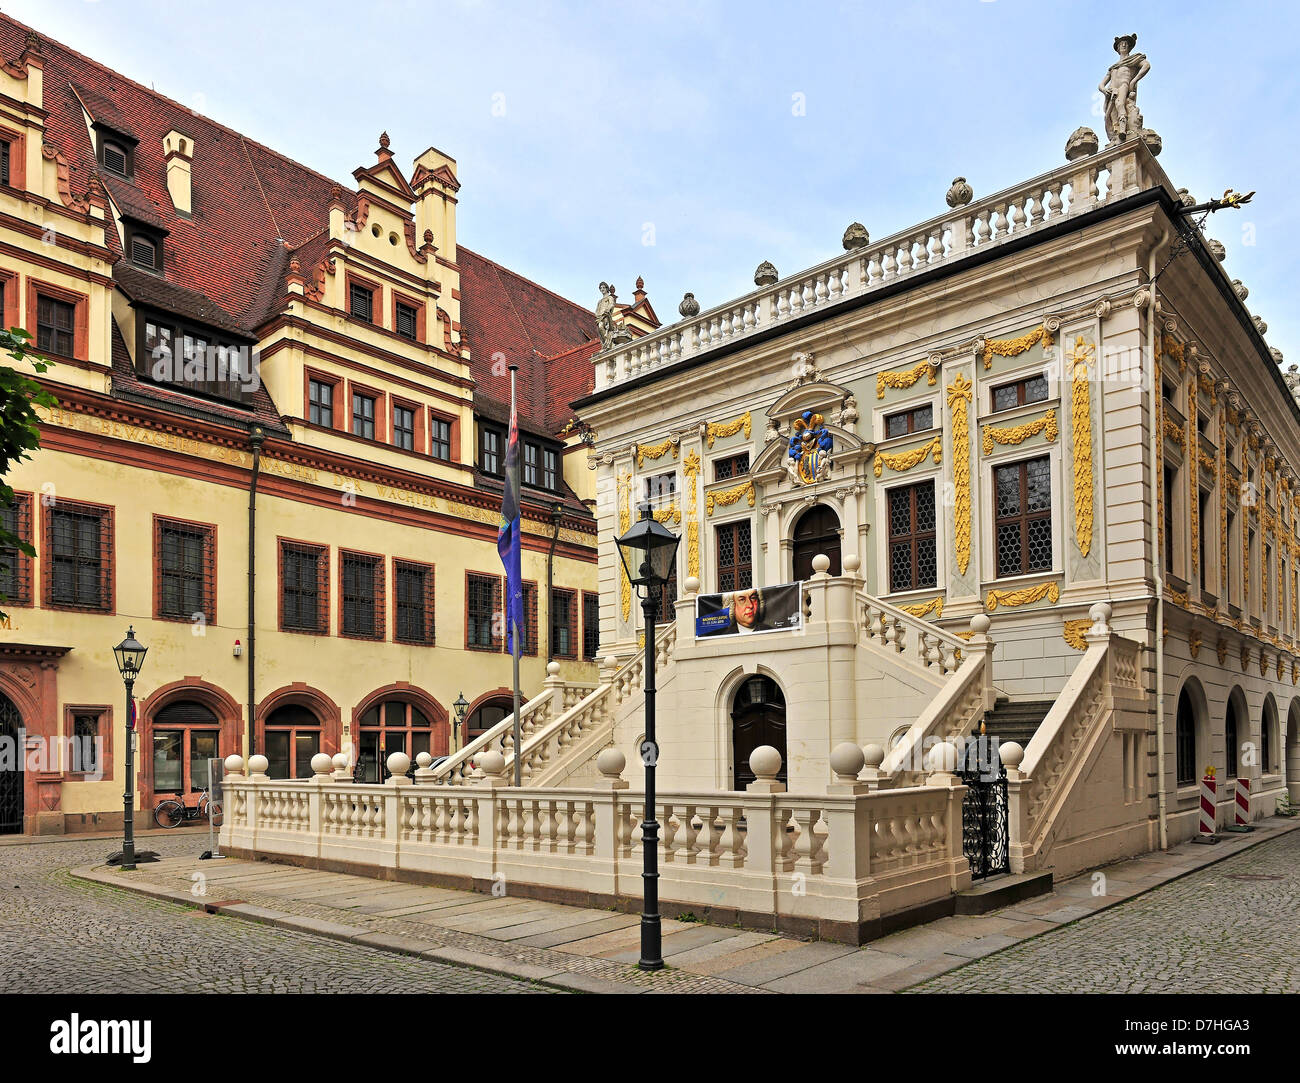 The old trading stock market at the Naschmarkt on the back of the city hall in Leipzig - Stock Image